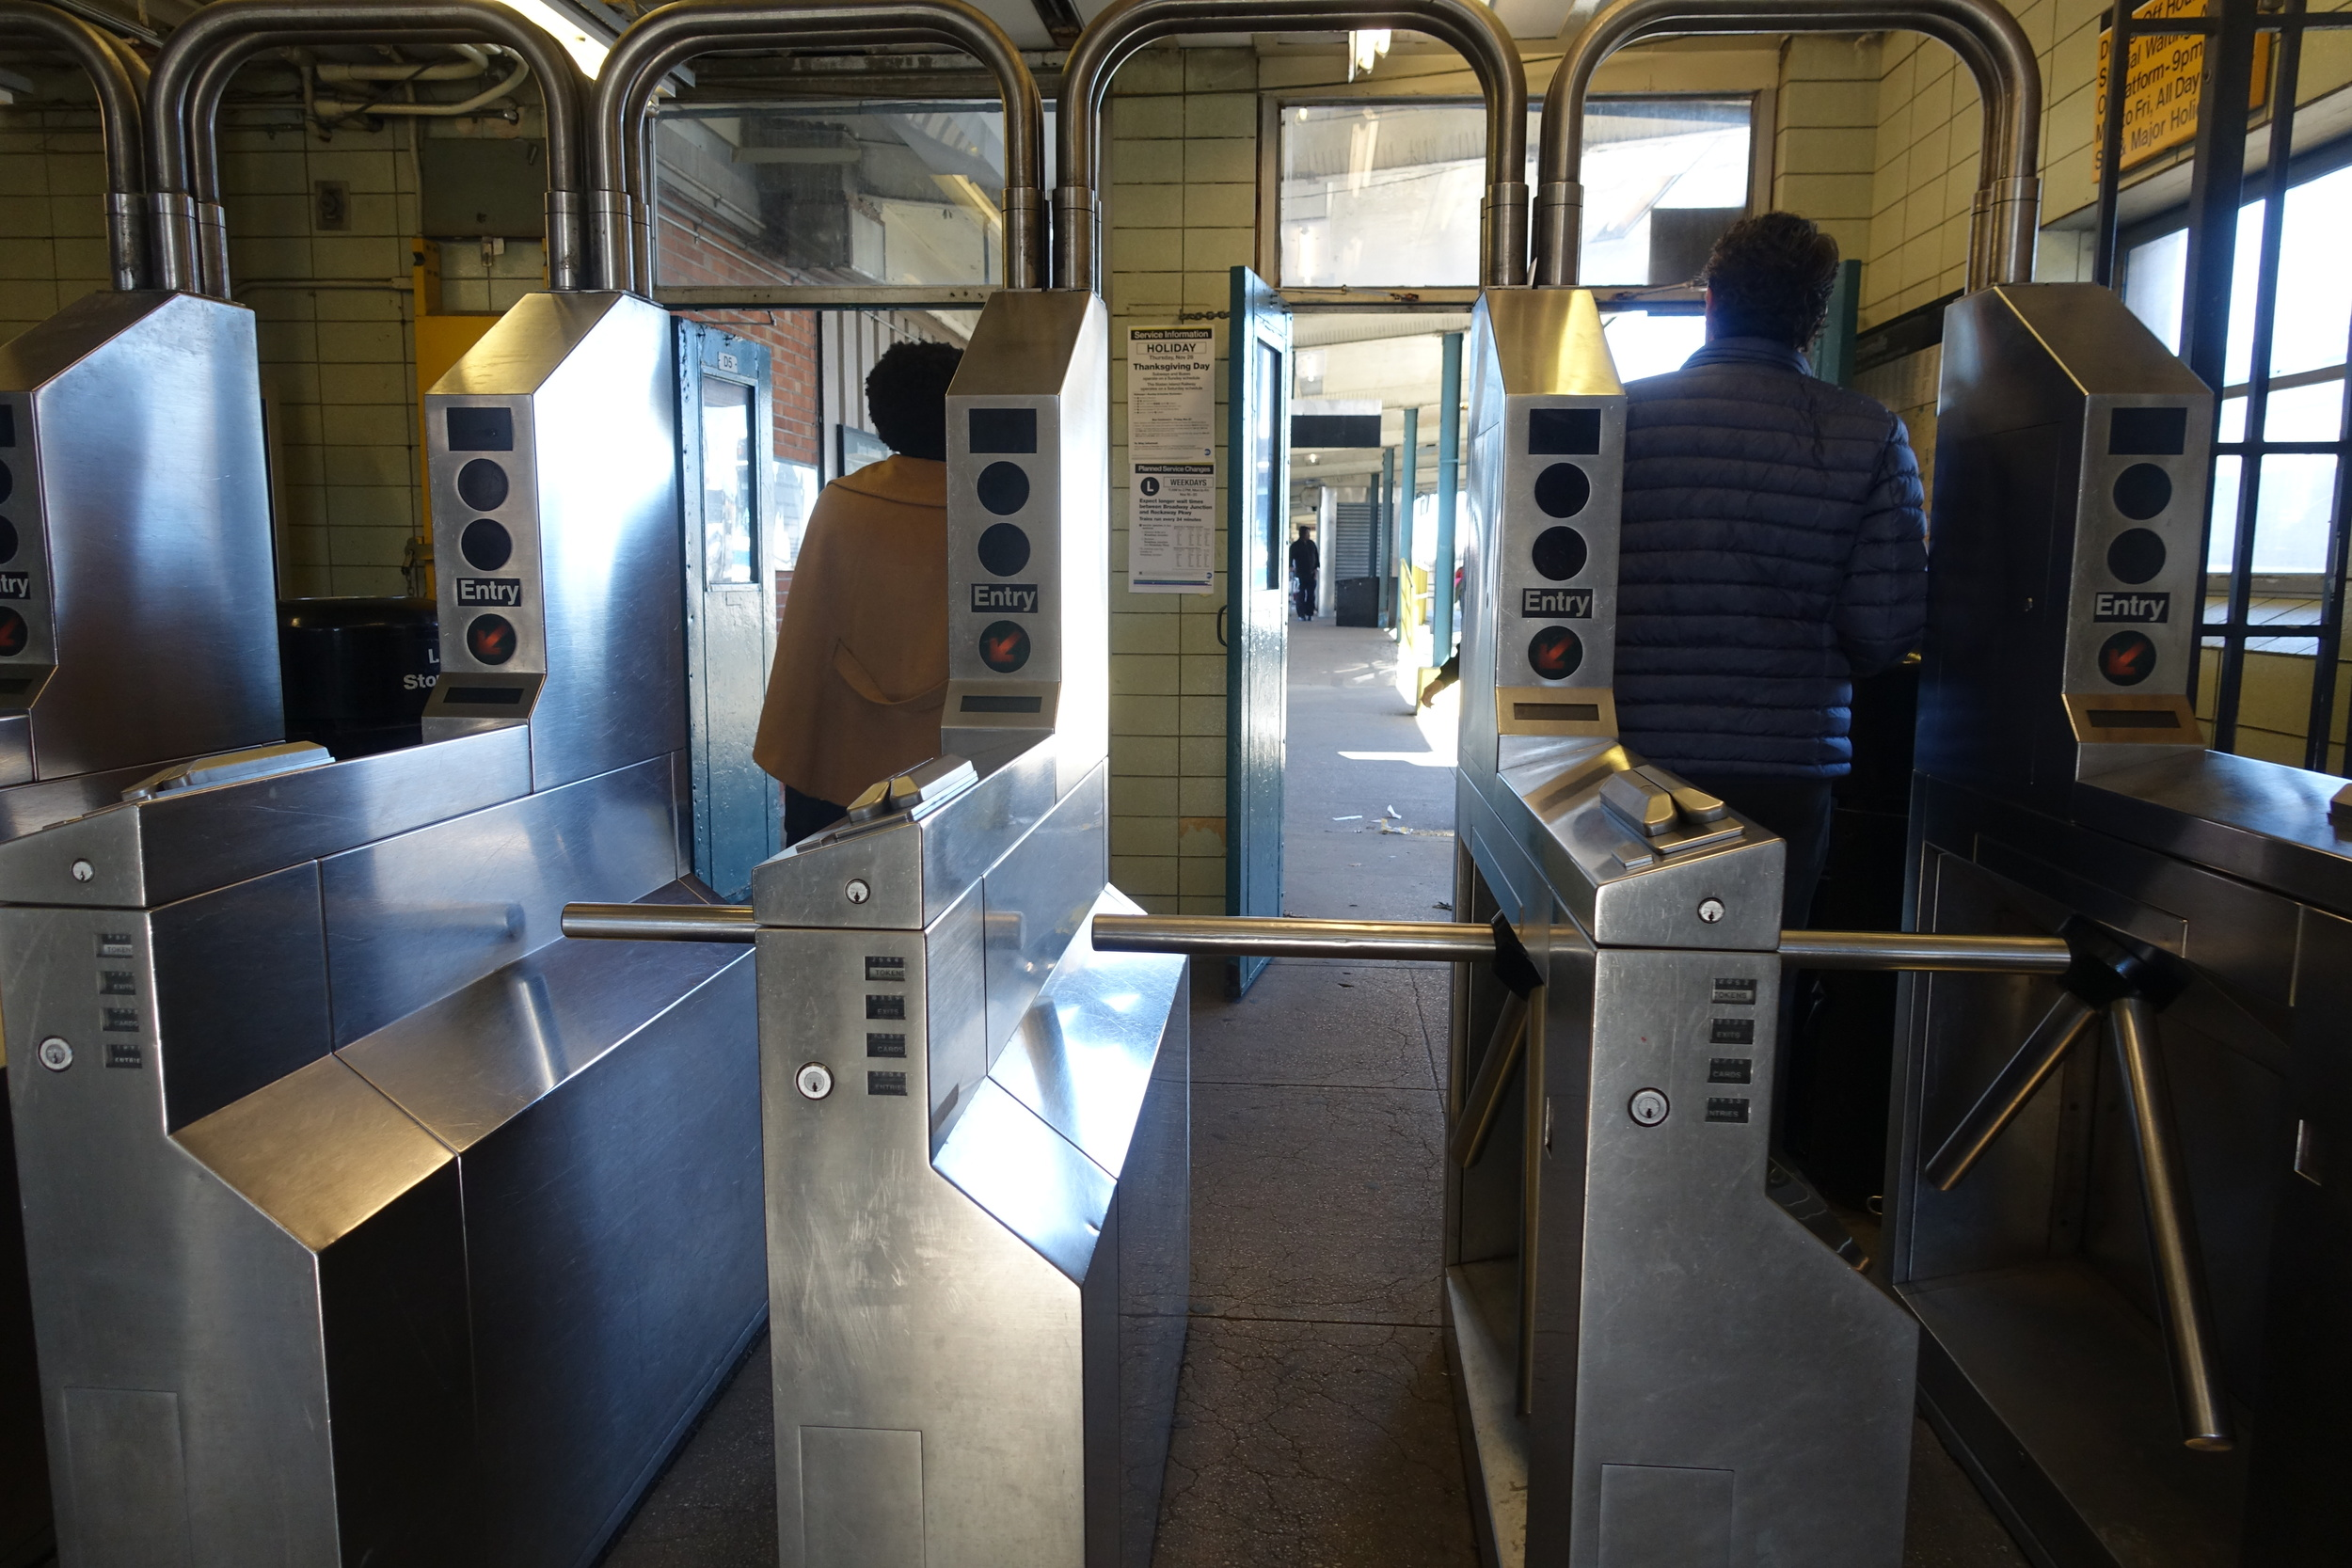 A 35-minute train ride from Union Square dropped us off in the middle of a deep-Brooklyn commercial intersection amongst the hustle-bustle of Friday morning commuters.